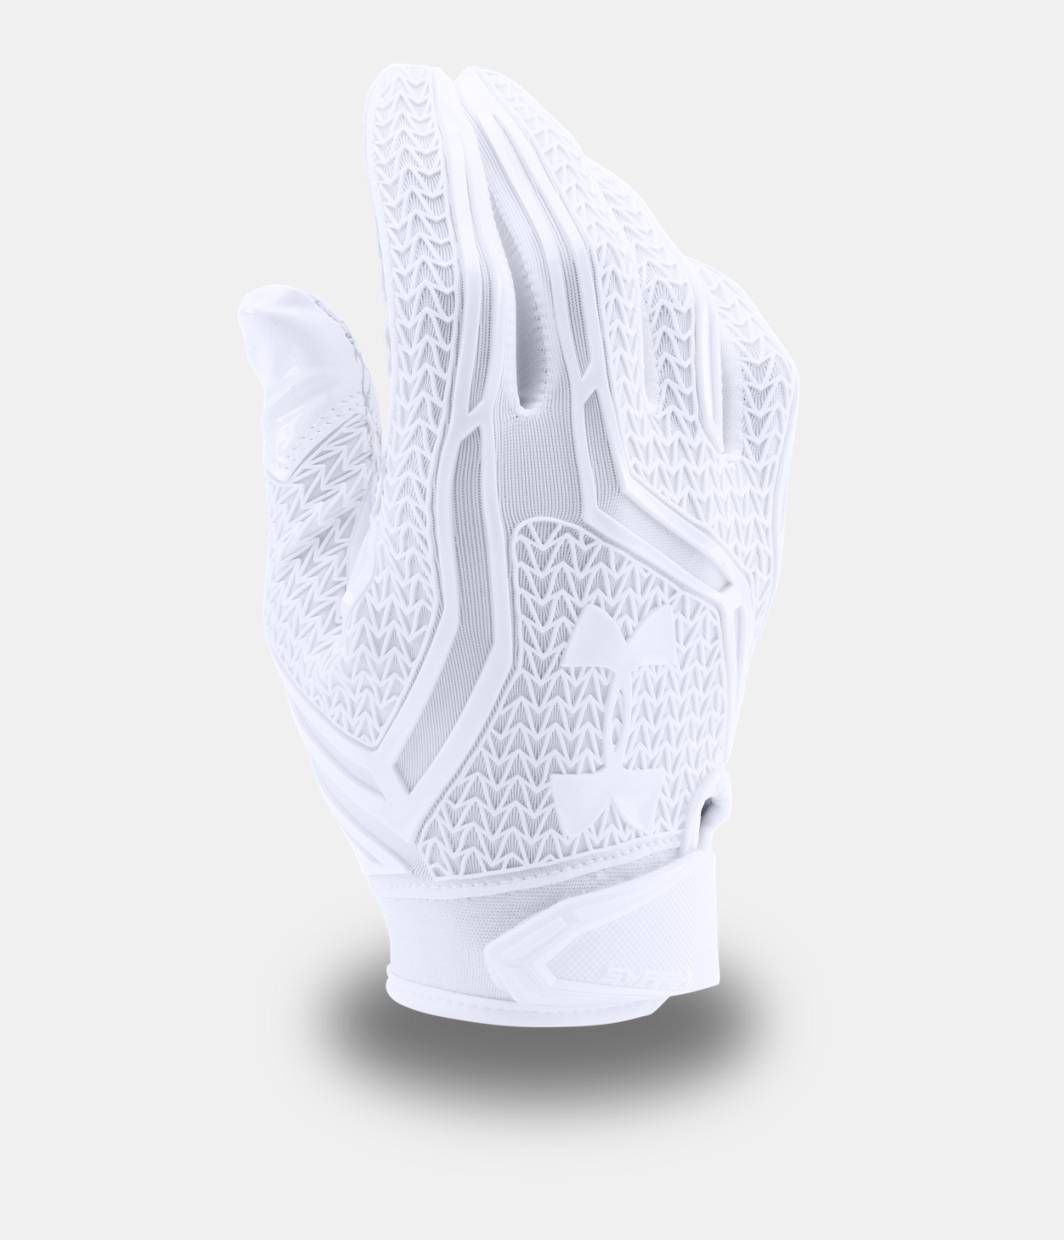 Under armour leather work gloves - Men S Ua Swarm Ii Football Gloves Under Armour Us